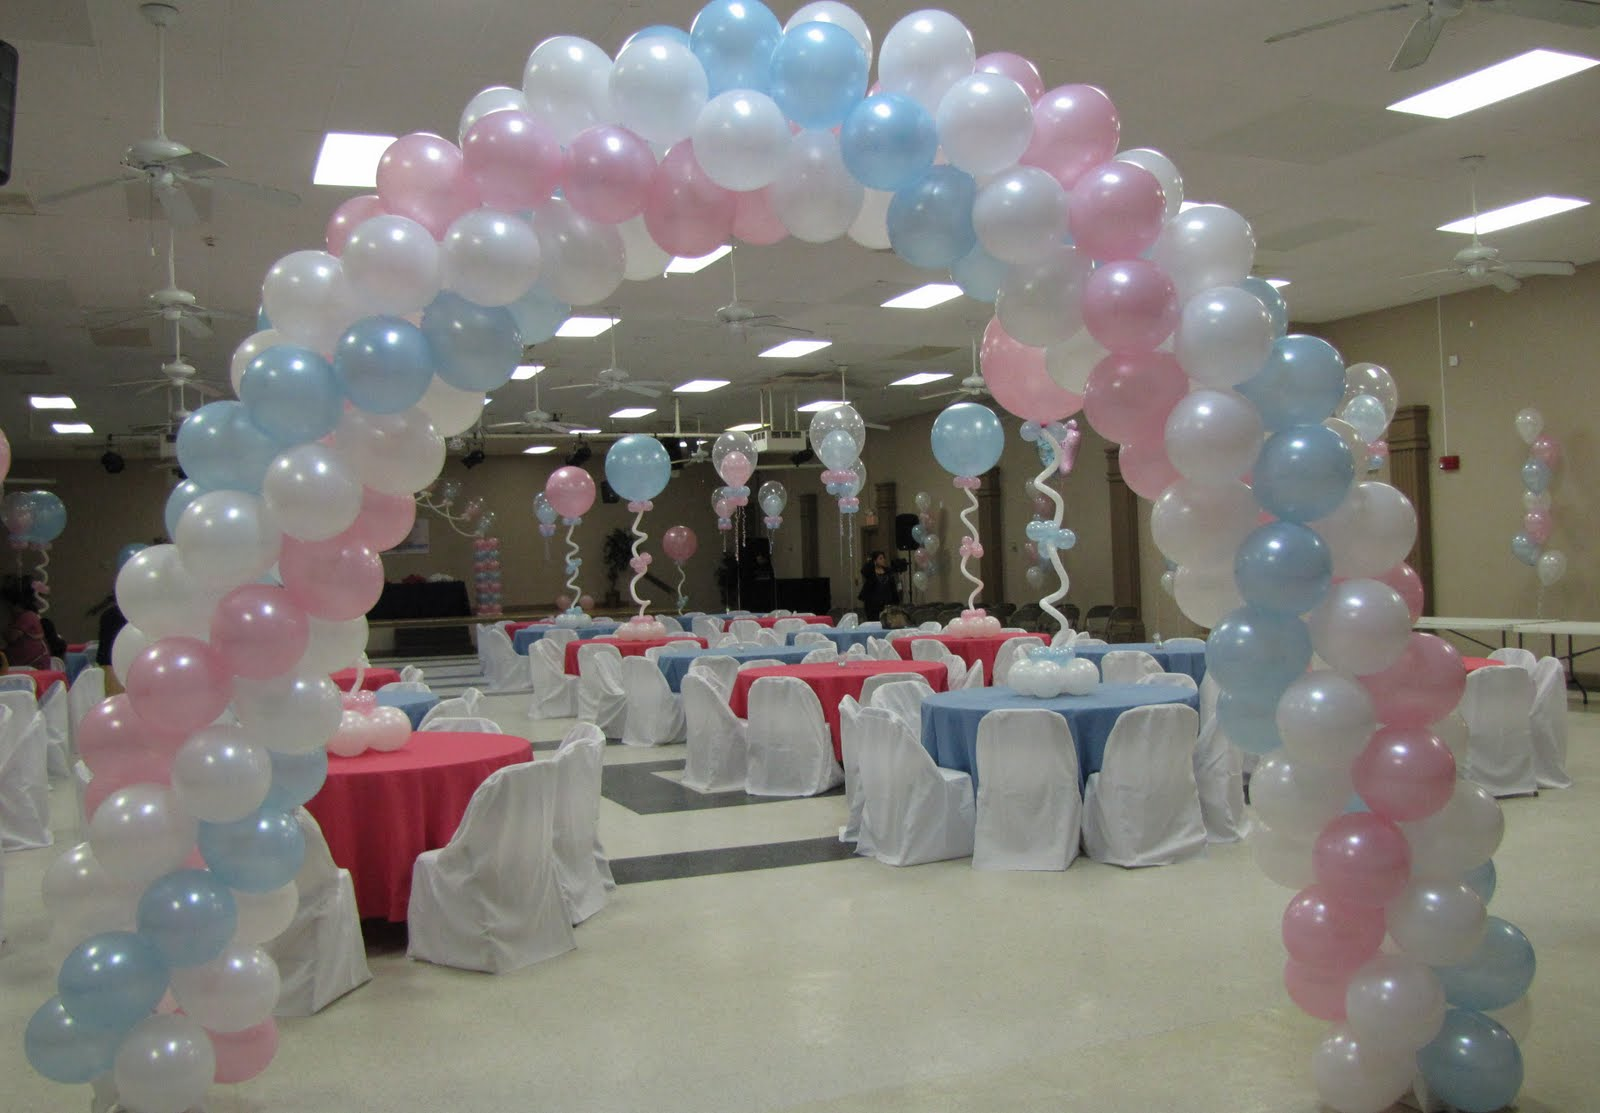 Balloons decorations for baby shower party favors ideas for Baby shower decoration centerpieces